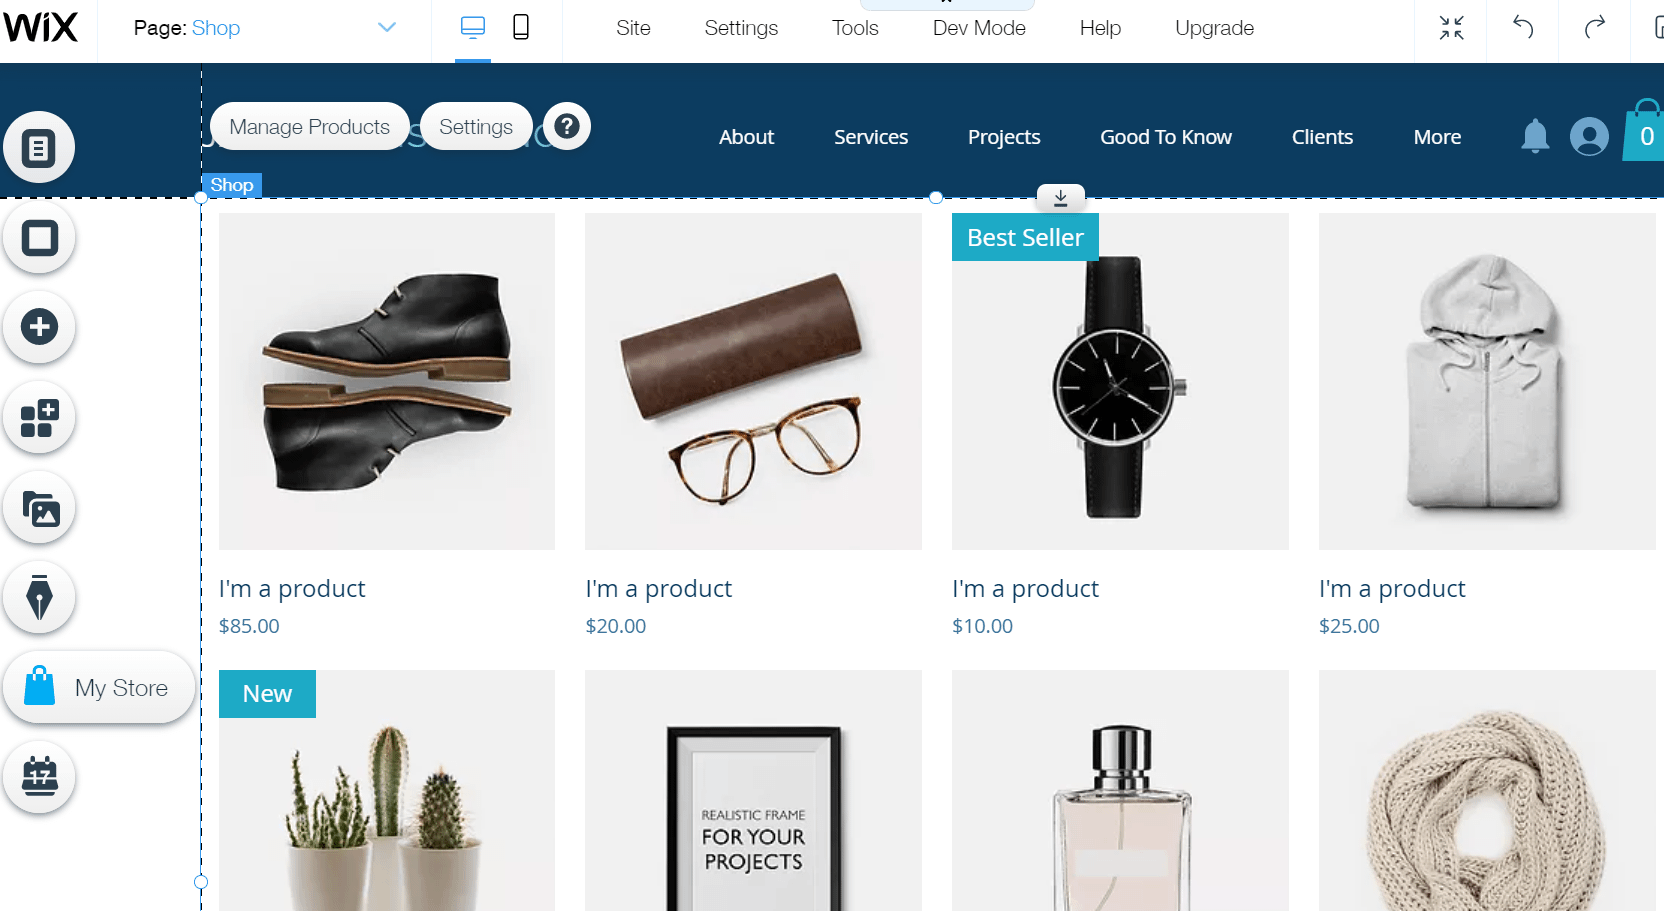 Which Is Better for eCommerce Websites in 2020?